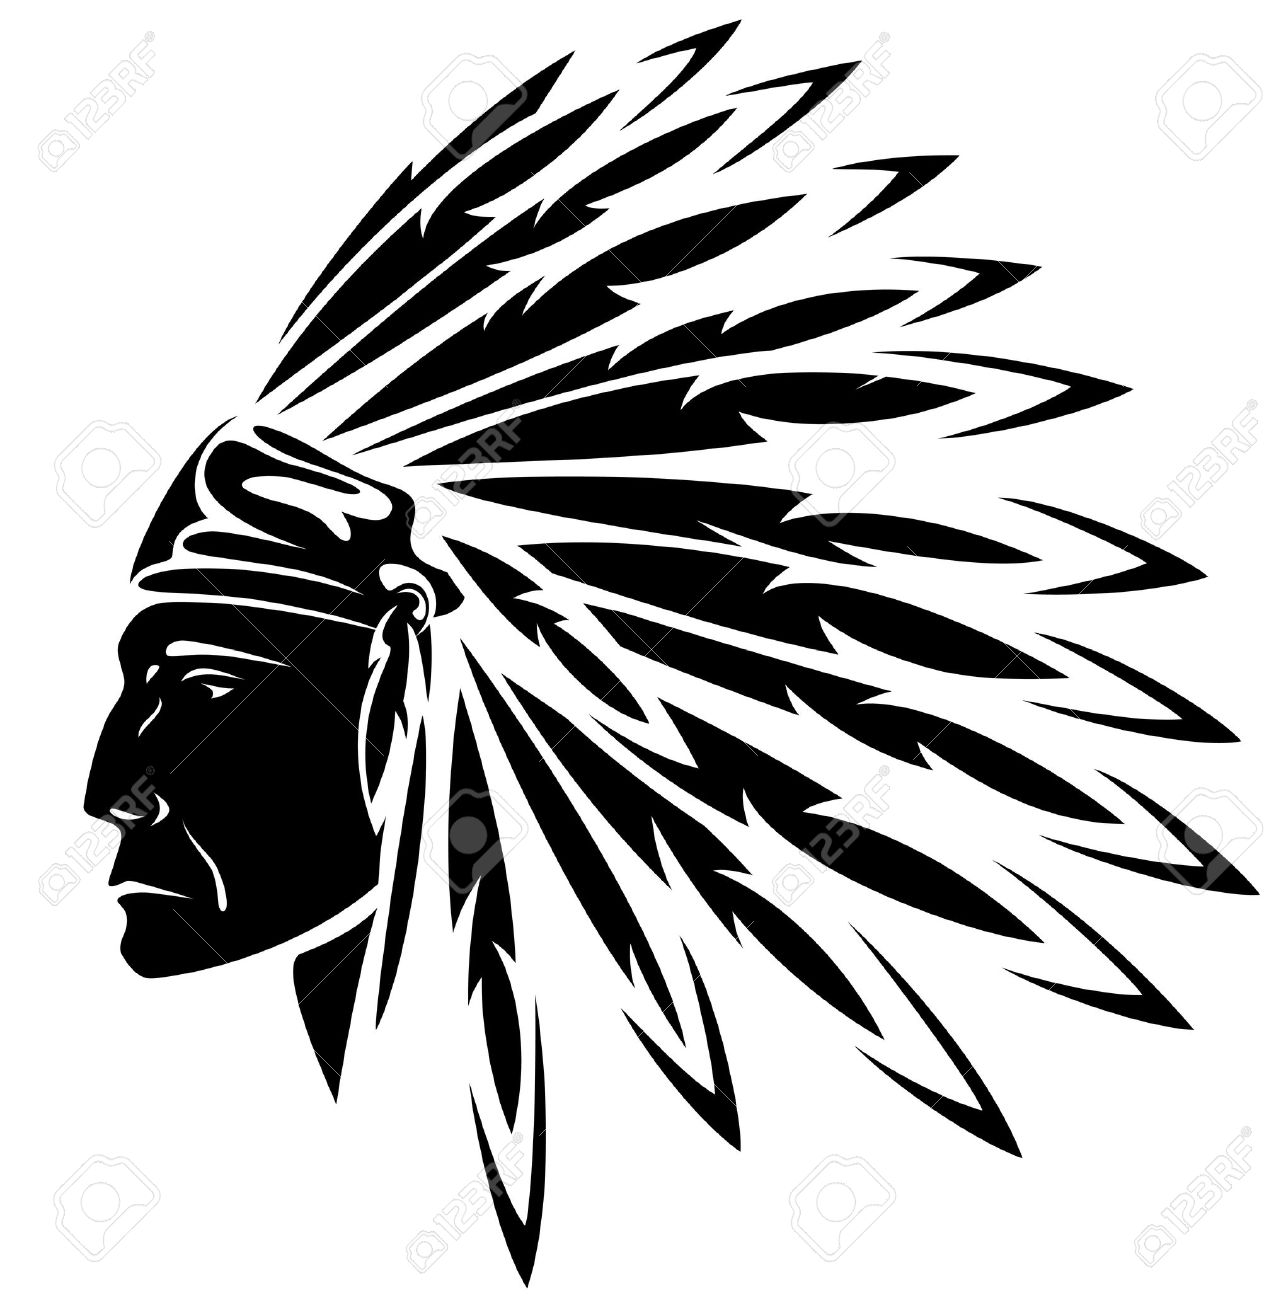 hight resolution of red indian chief black and white illustration stock vector 17478061